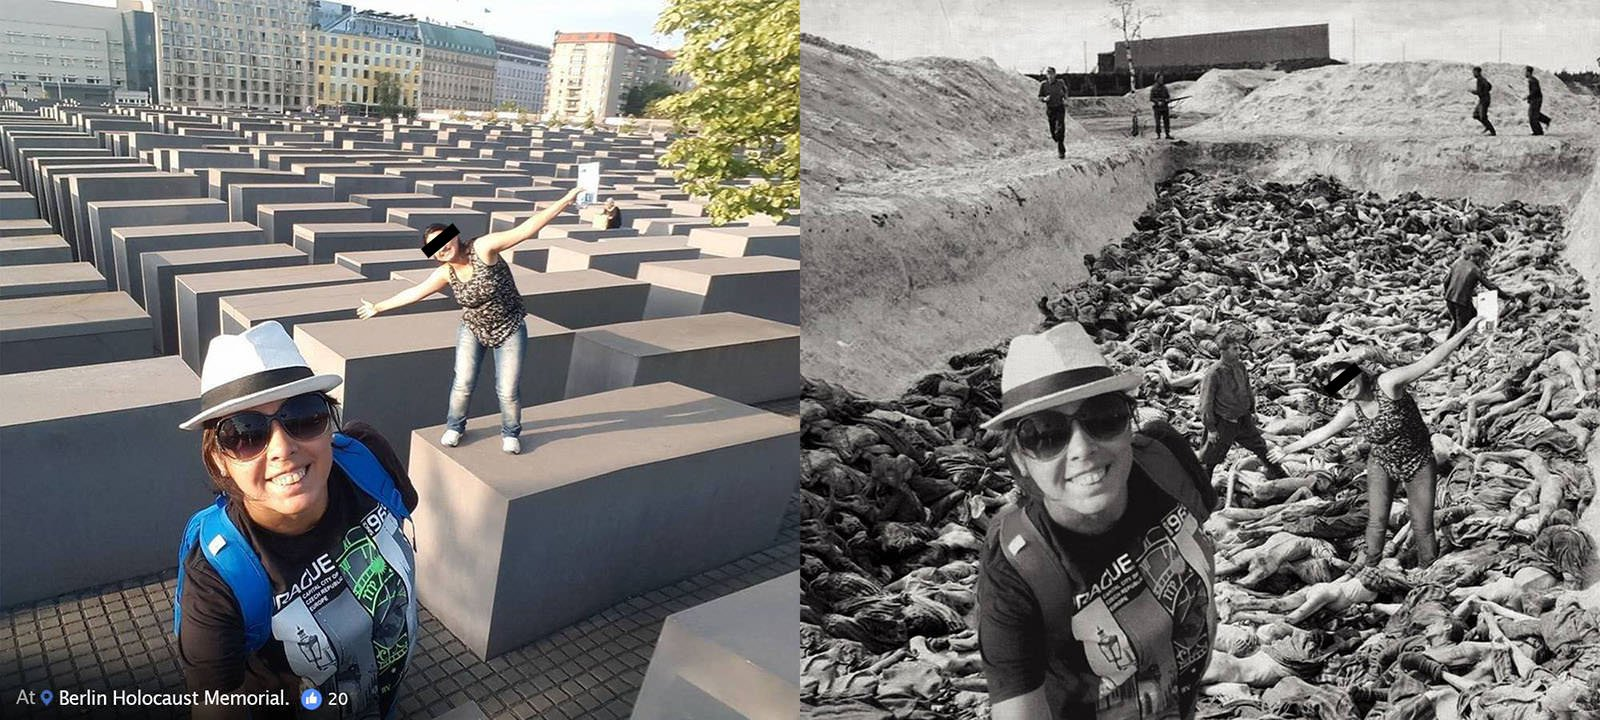 en92-is-it-ok-to-hit-a-monument-and-take-a-selfie-in-a-concentration-camp_04